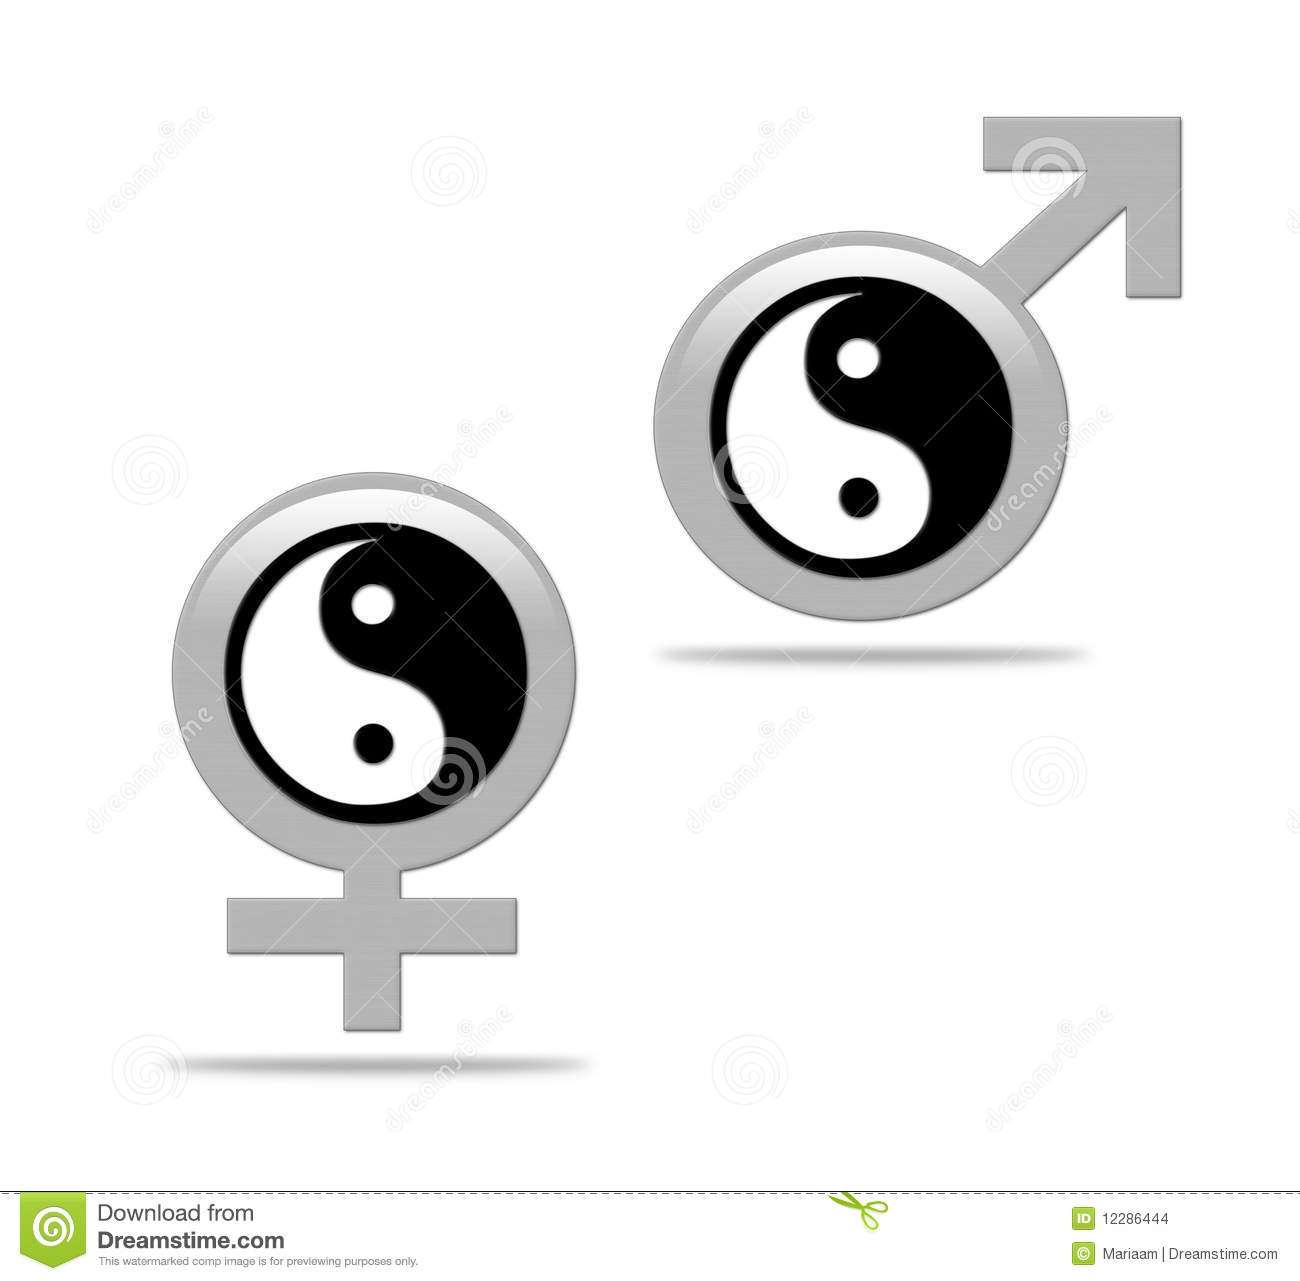 an examination of the yin yang concept The concept of yinyang is associated in chinese thought with the idea of the five  phases (wuxing)—metal, wood, water, fire, and earth—both of these ideas.